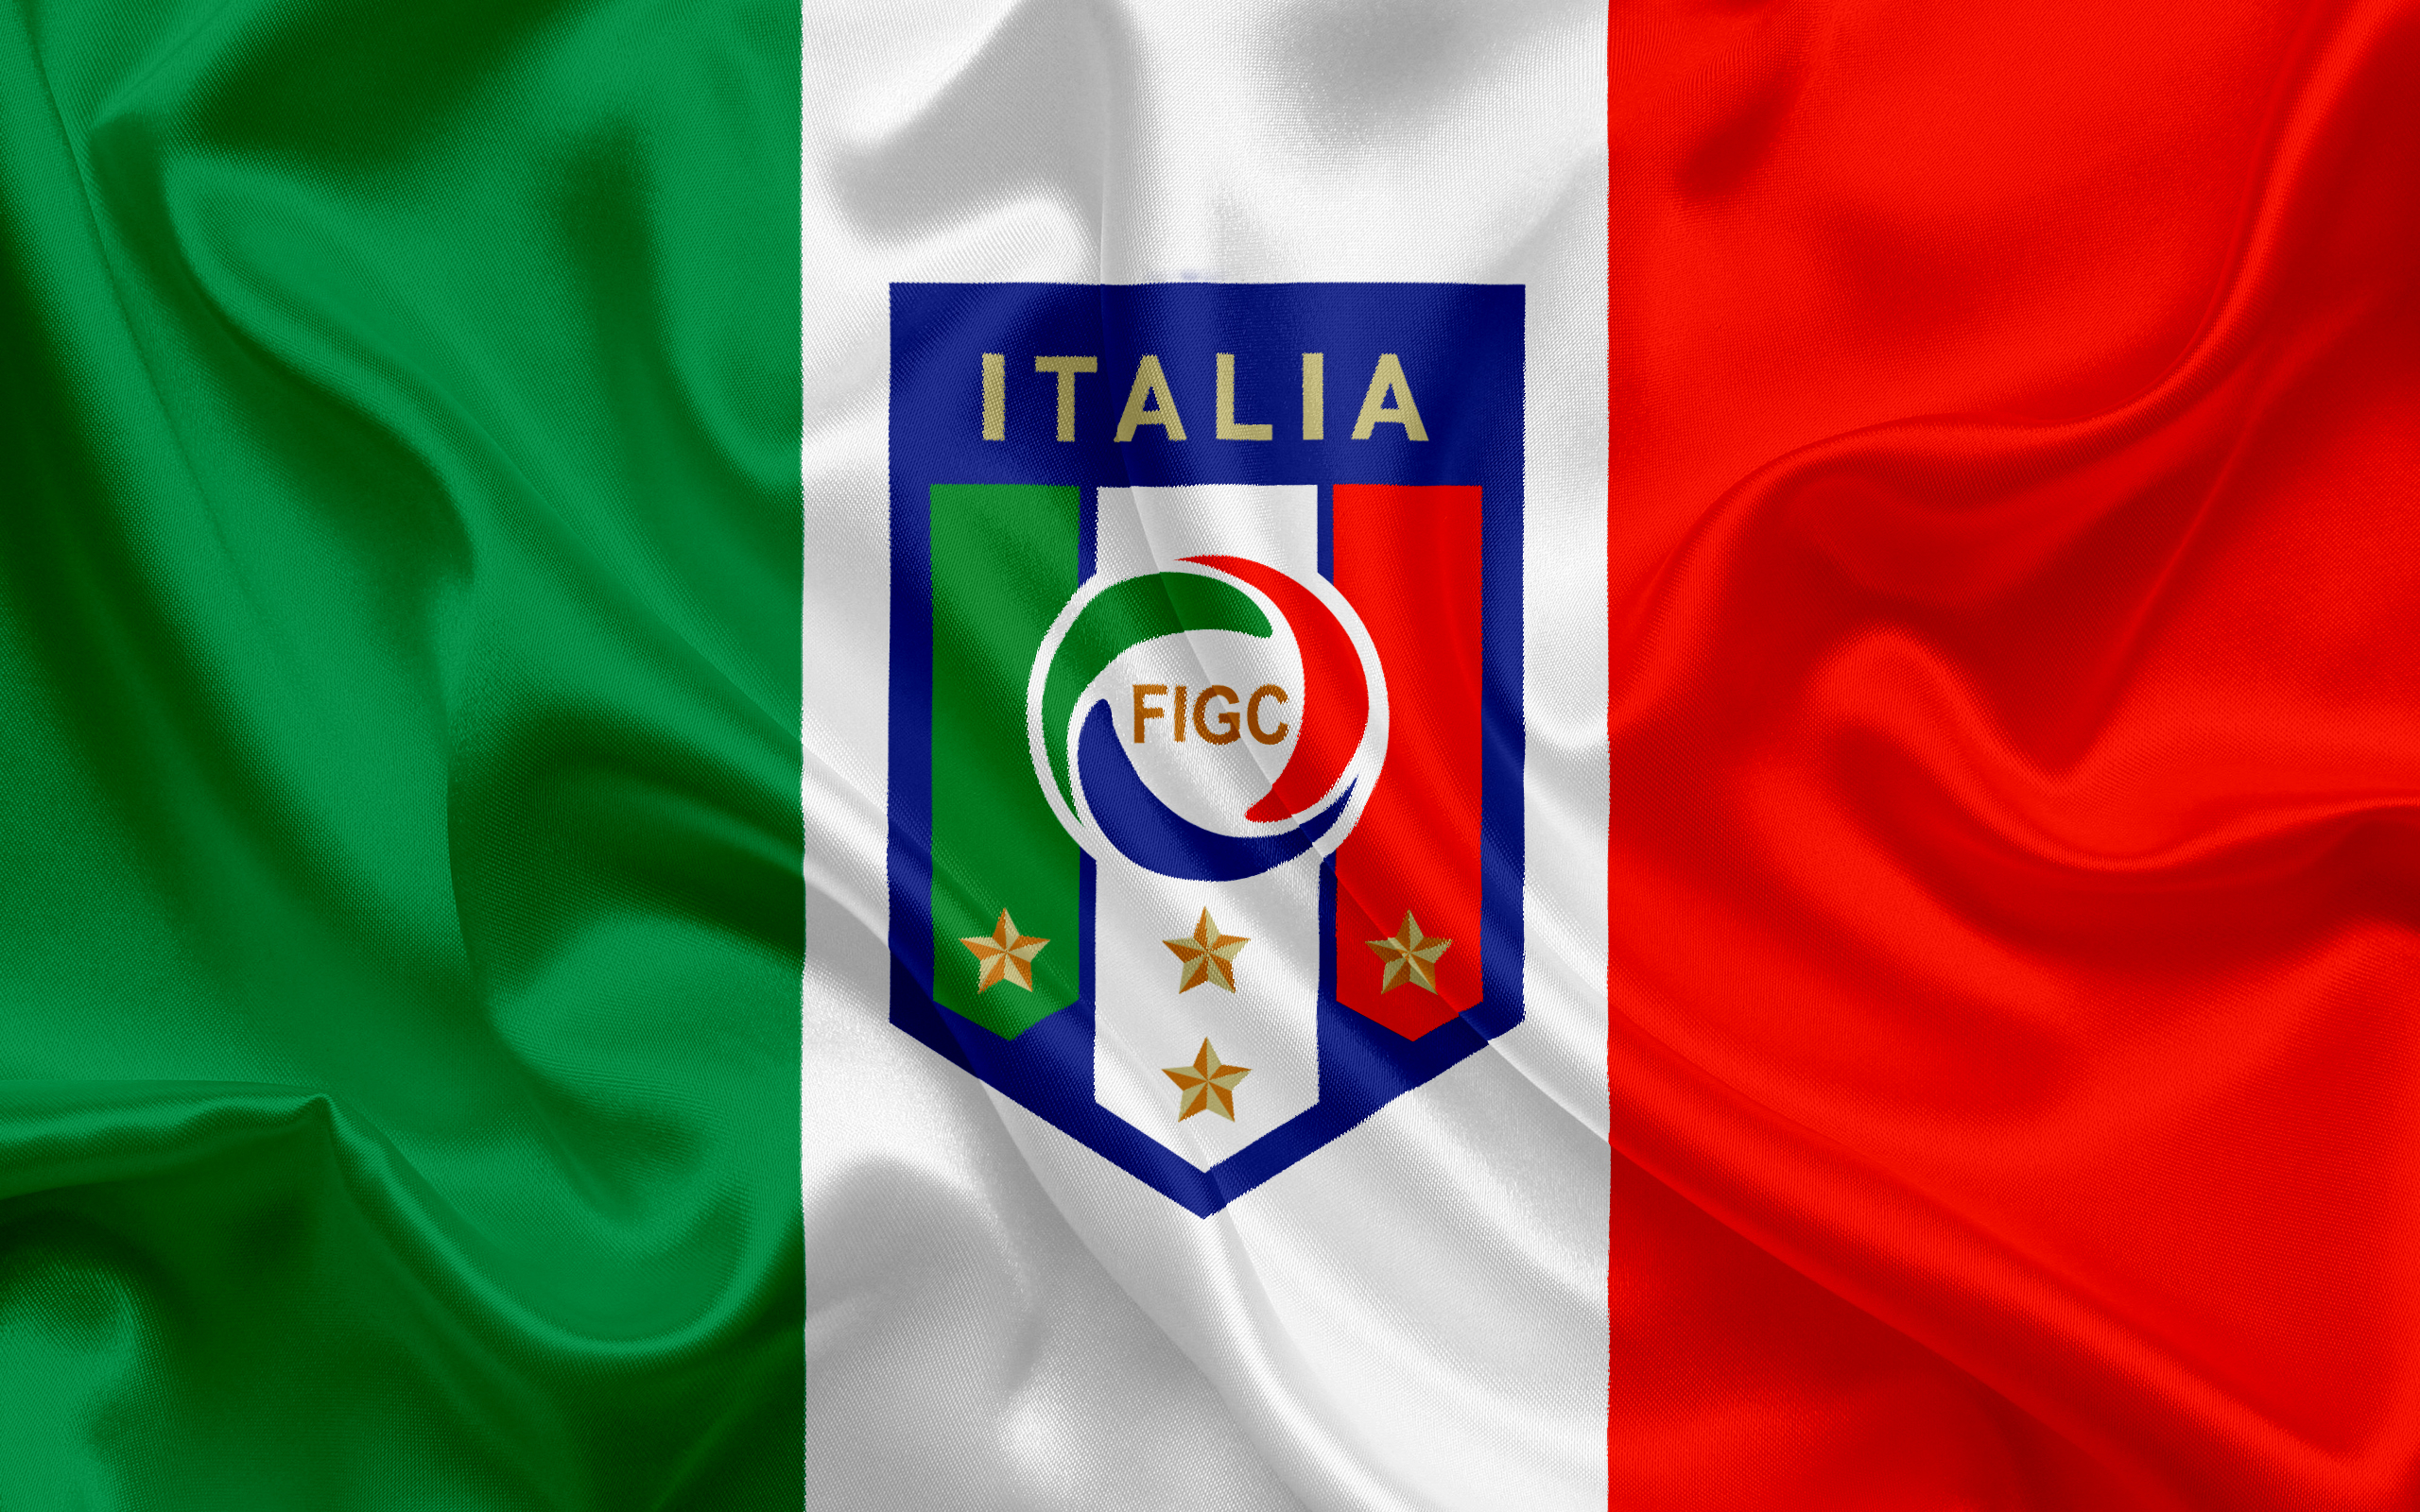 Italy National Football Team Hd Wallpaper Hintergrund 2560x1600 Id 979058 Wallpaper Abyss